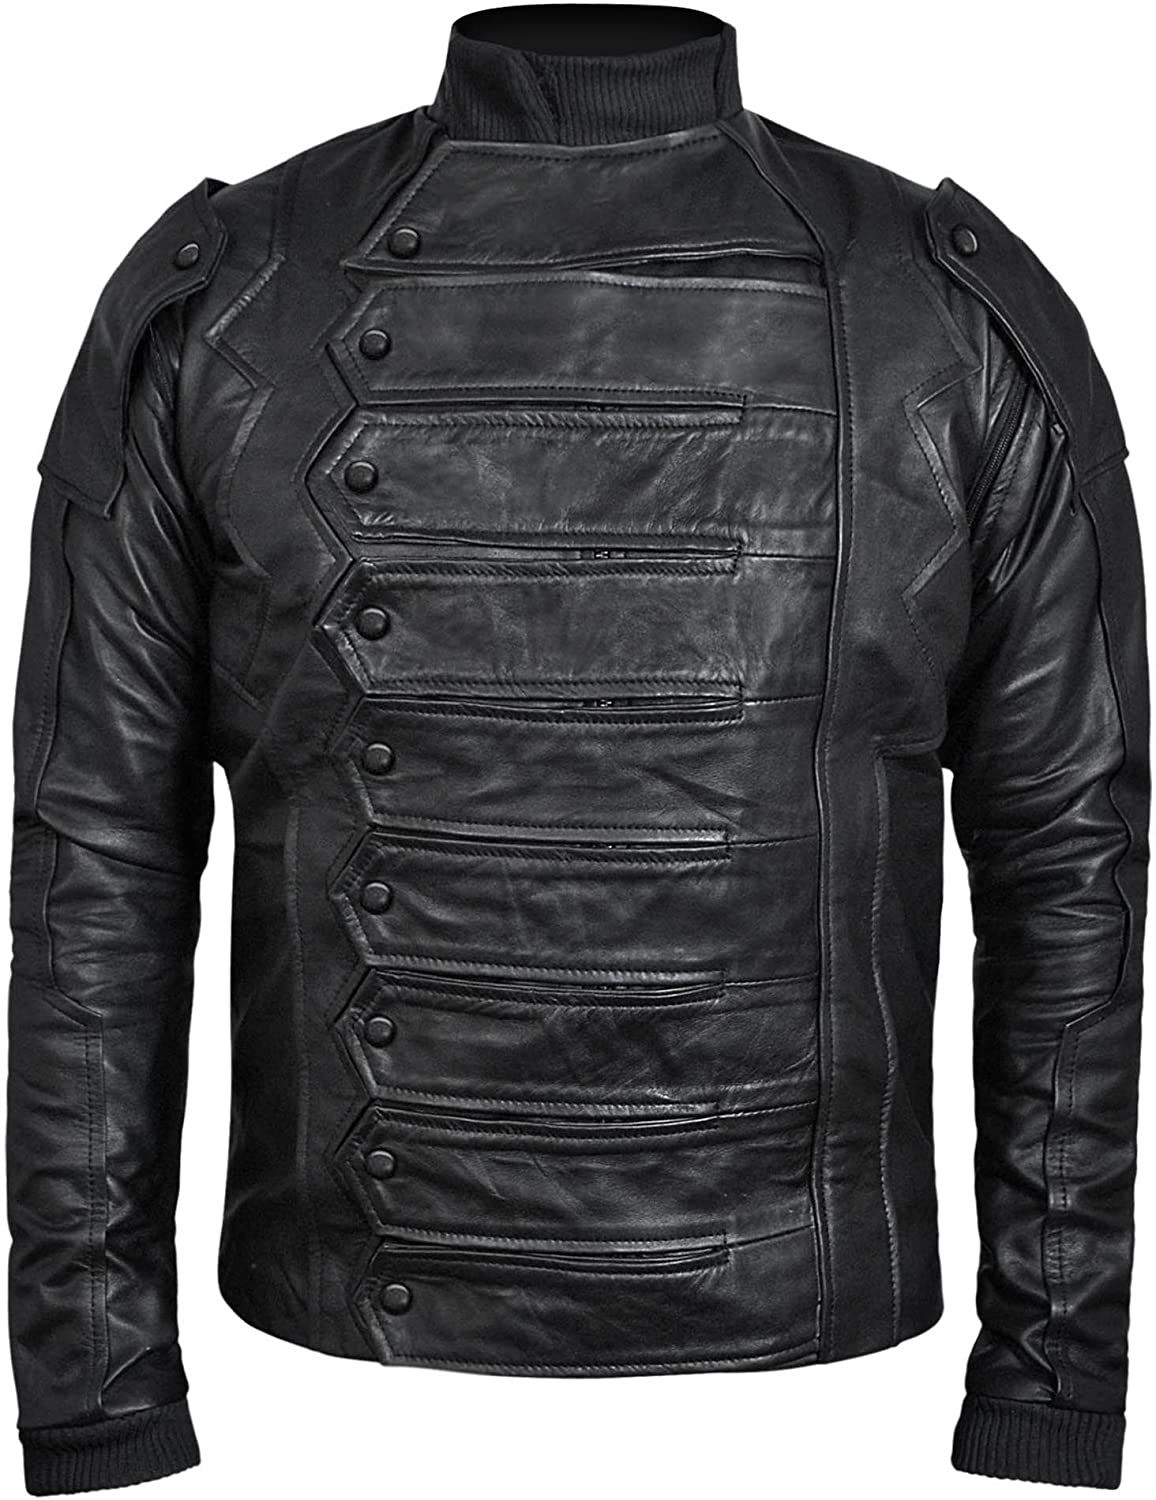 Bucky Barnes: Winter Soldier Detachable Sleeves Black Real Leather Jacket - DeluxeAdultCostumes.com